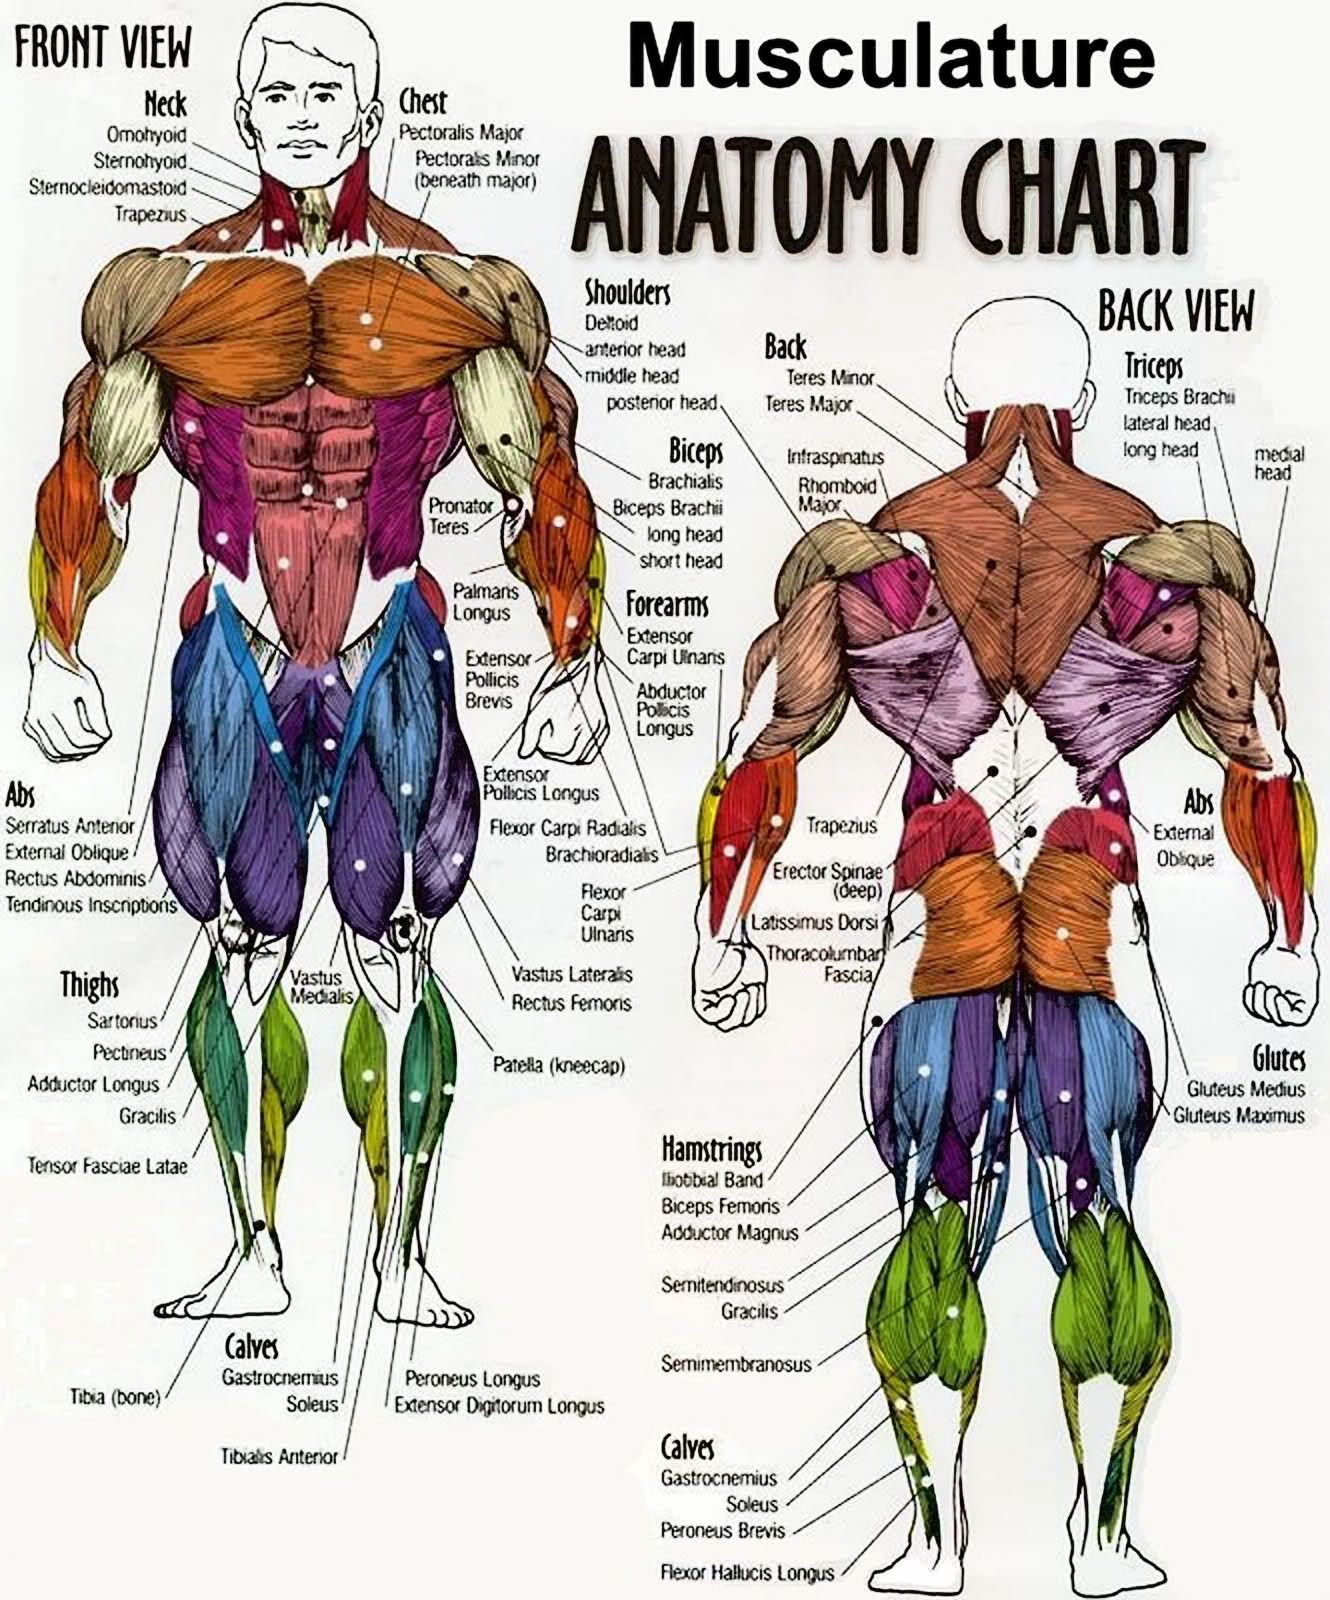 male musculature anatomy chart | Exercise & Fitness